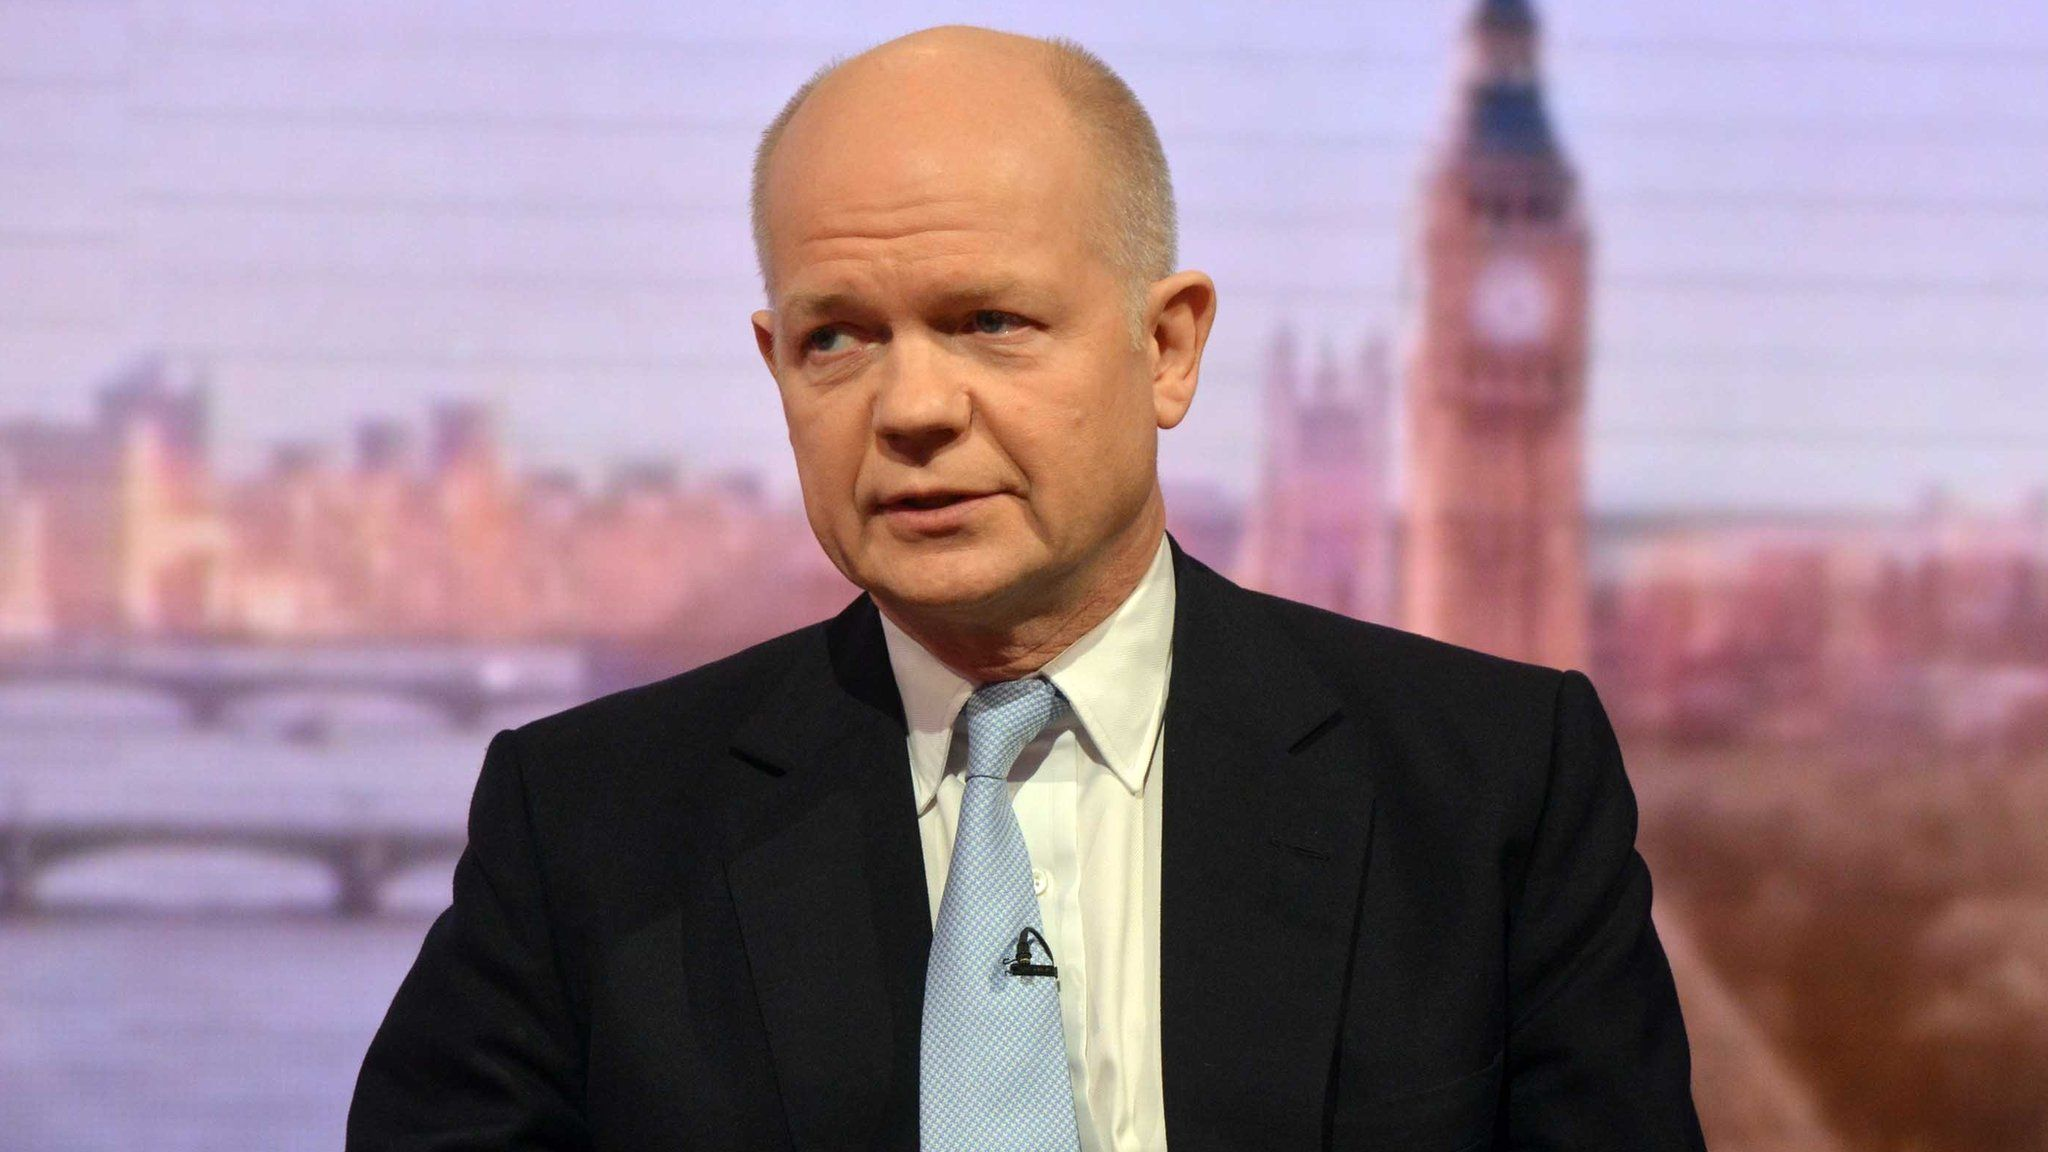 William Hague in 2015